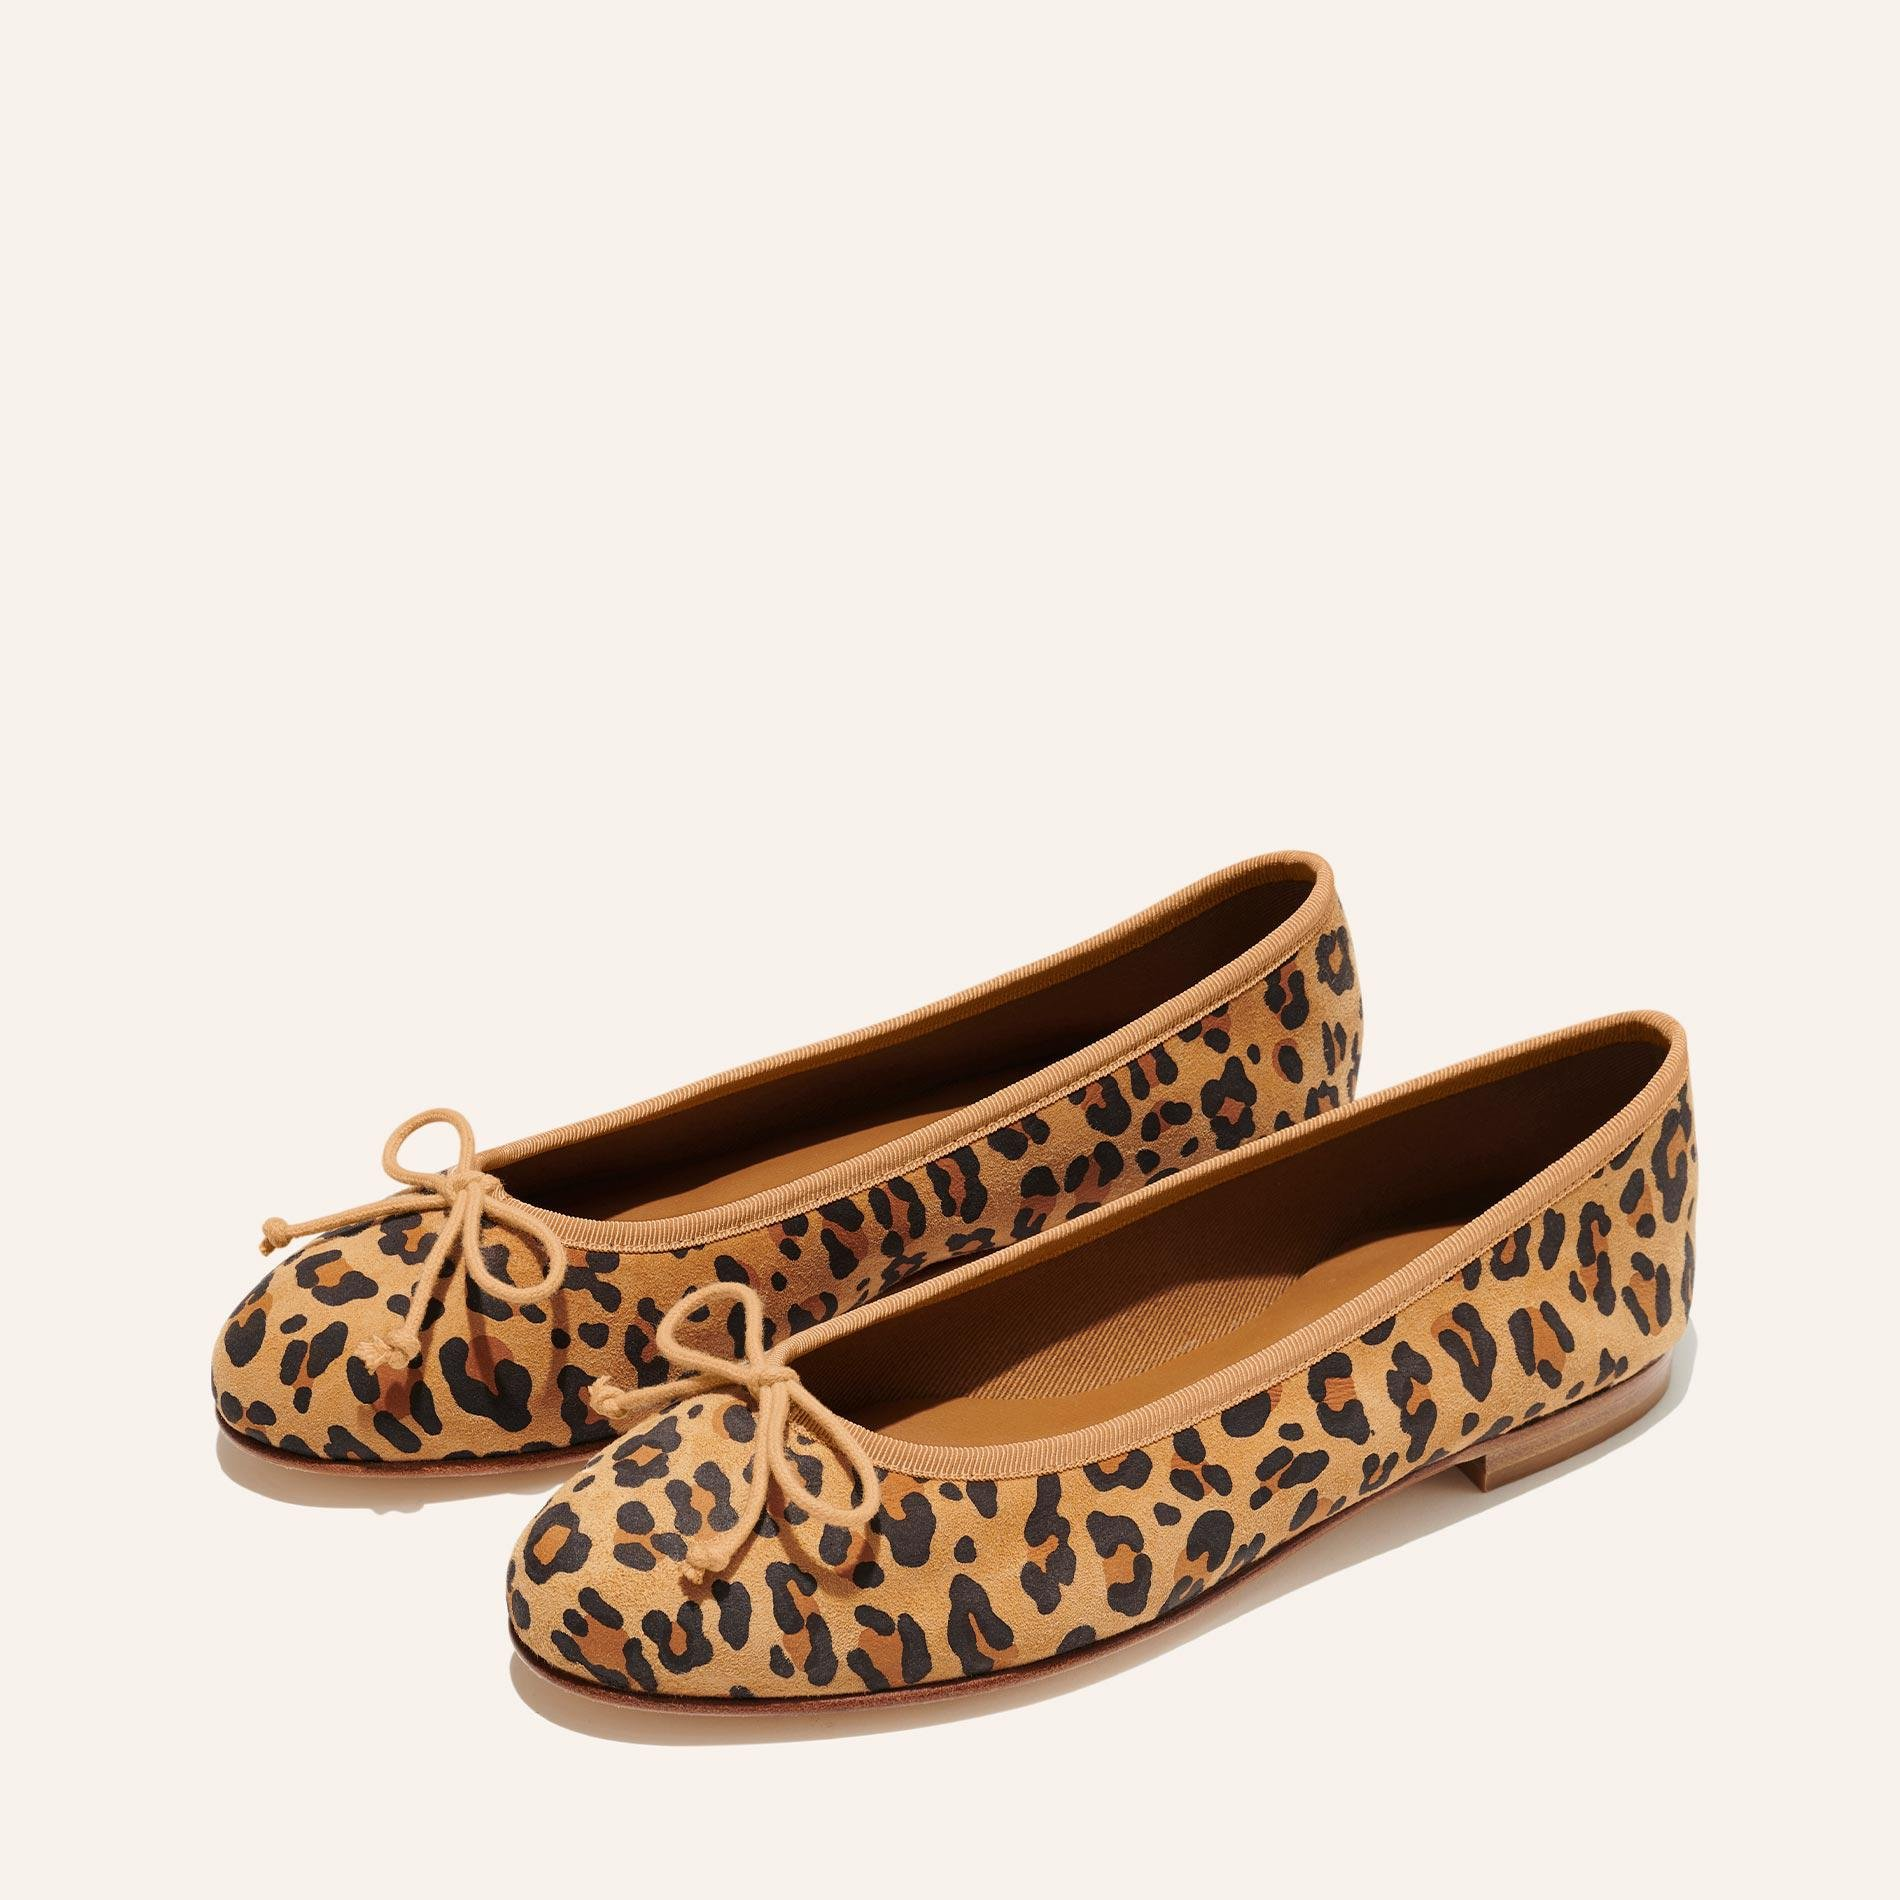 The Demi - Leopard Suede